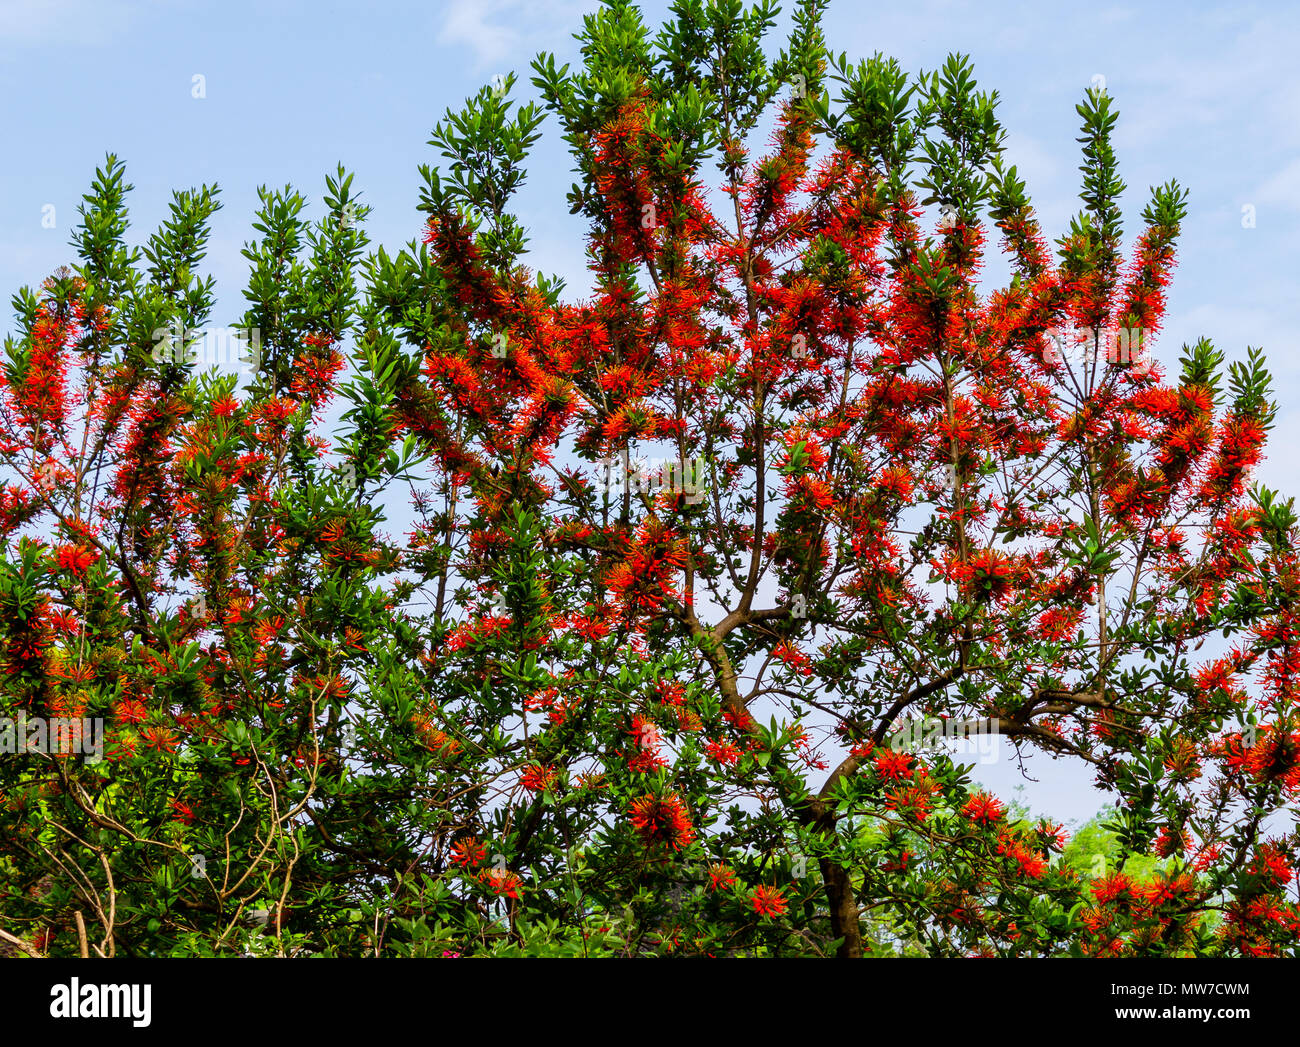 embothrium-coccineum-chilean-fire-bush-or-chilean-fire-tree-in-full-flower-in-early-summer-MW7CWM.jpg